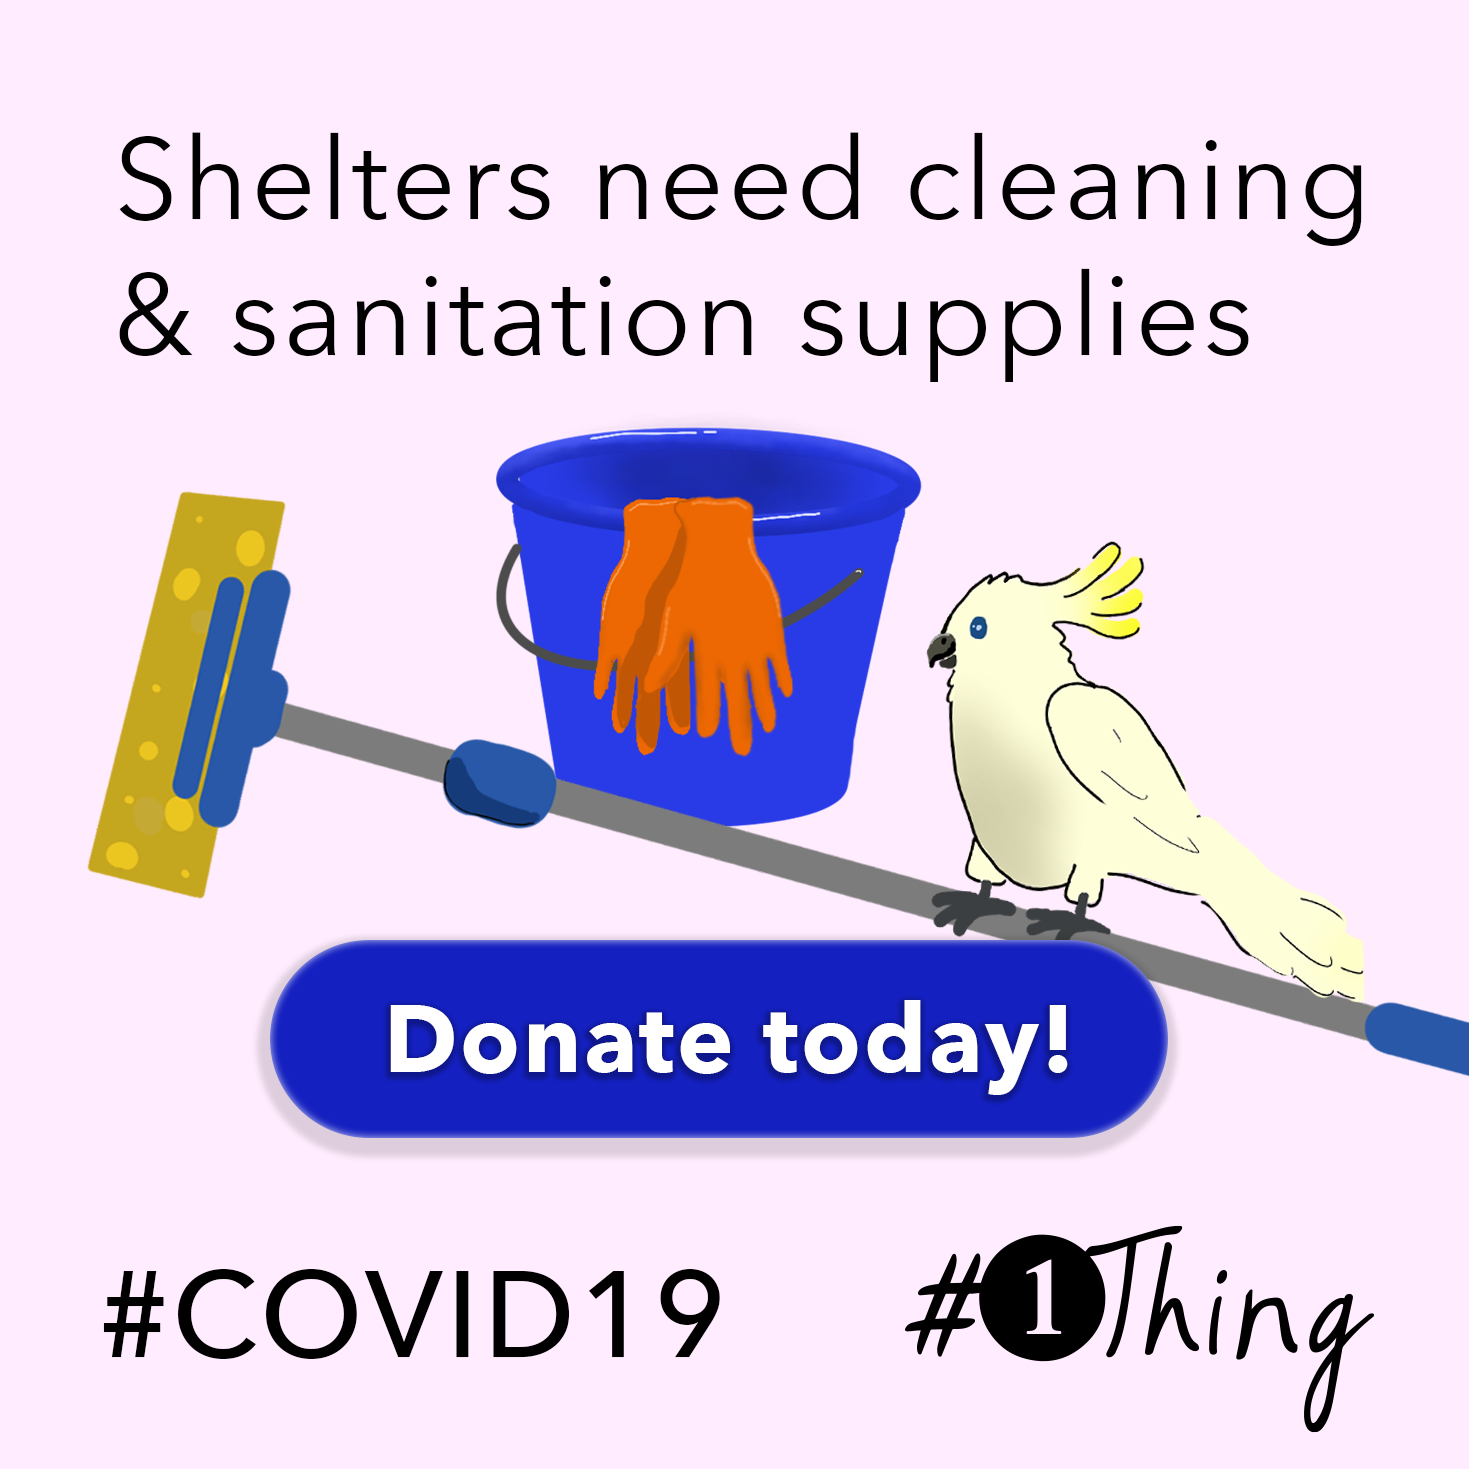 Shelters need cleaning & sanitation supplies